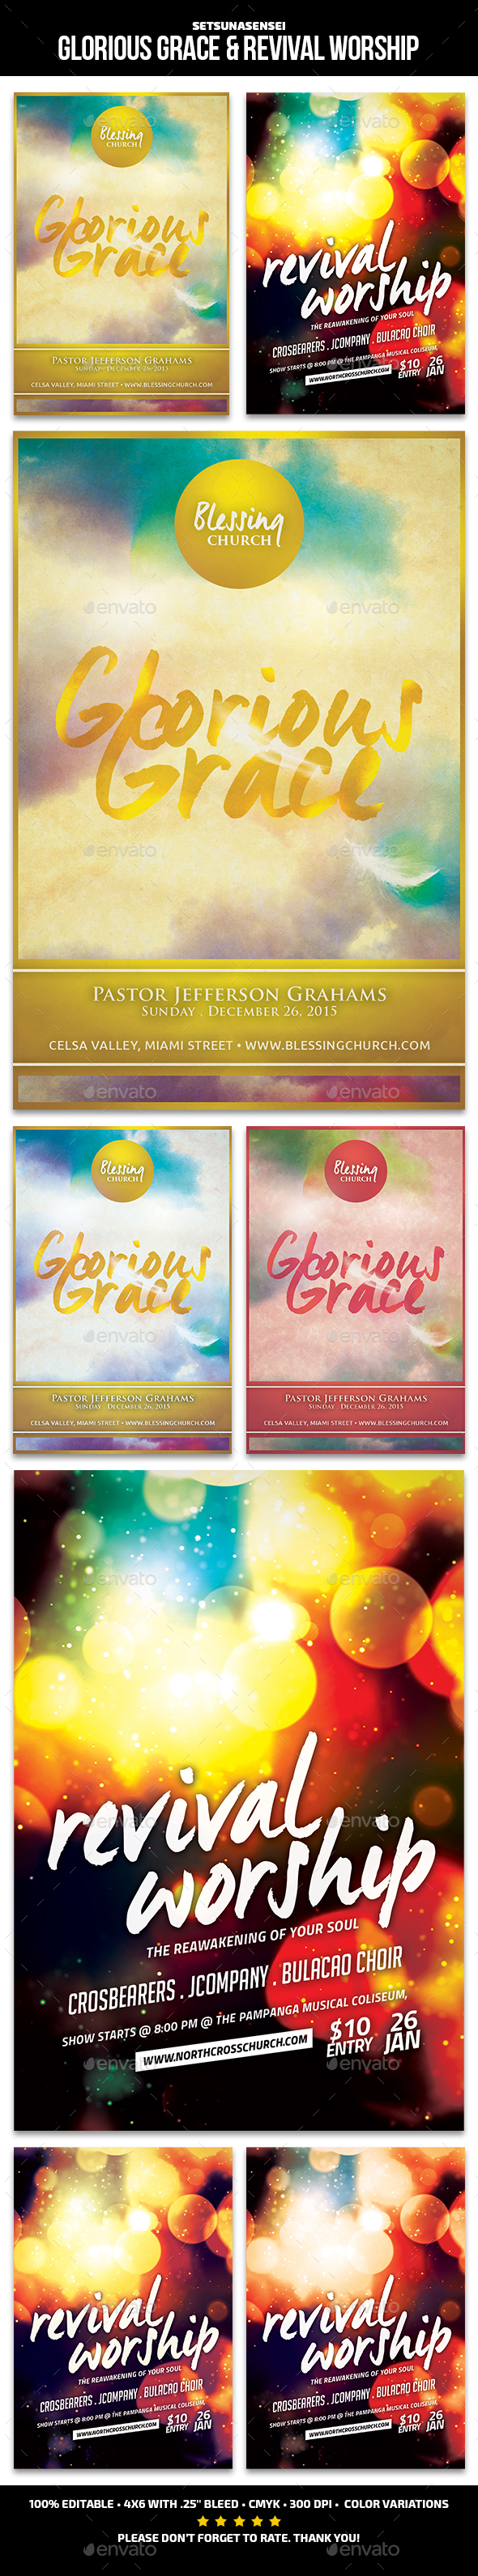 Glorious Grace & Revival Worship - Church Flyers